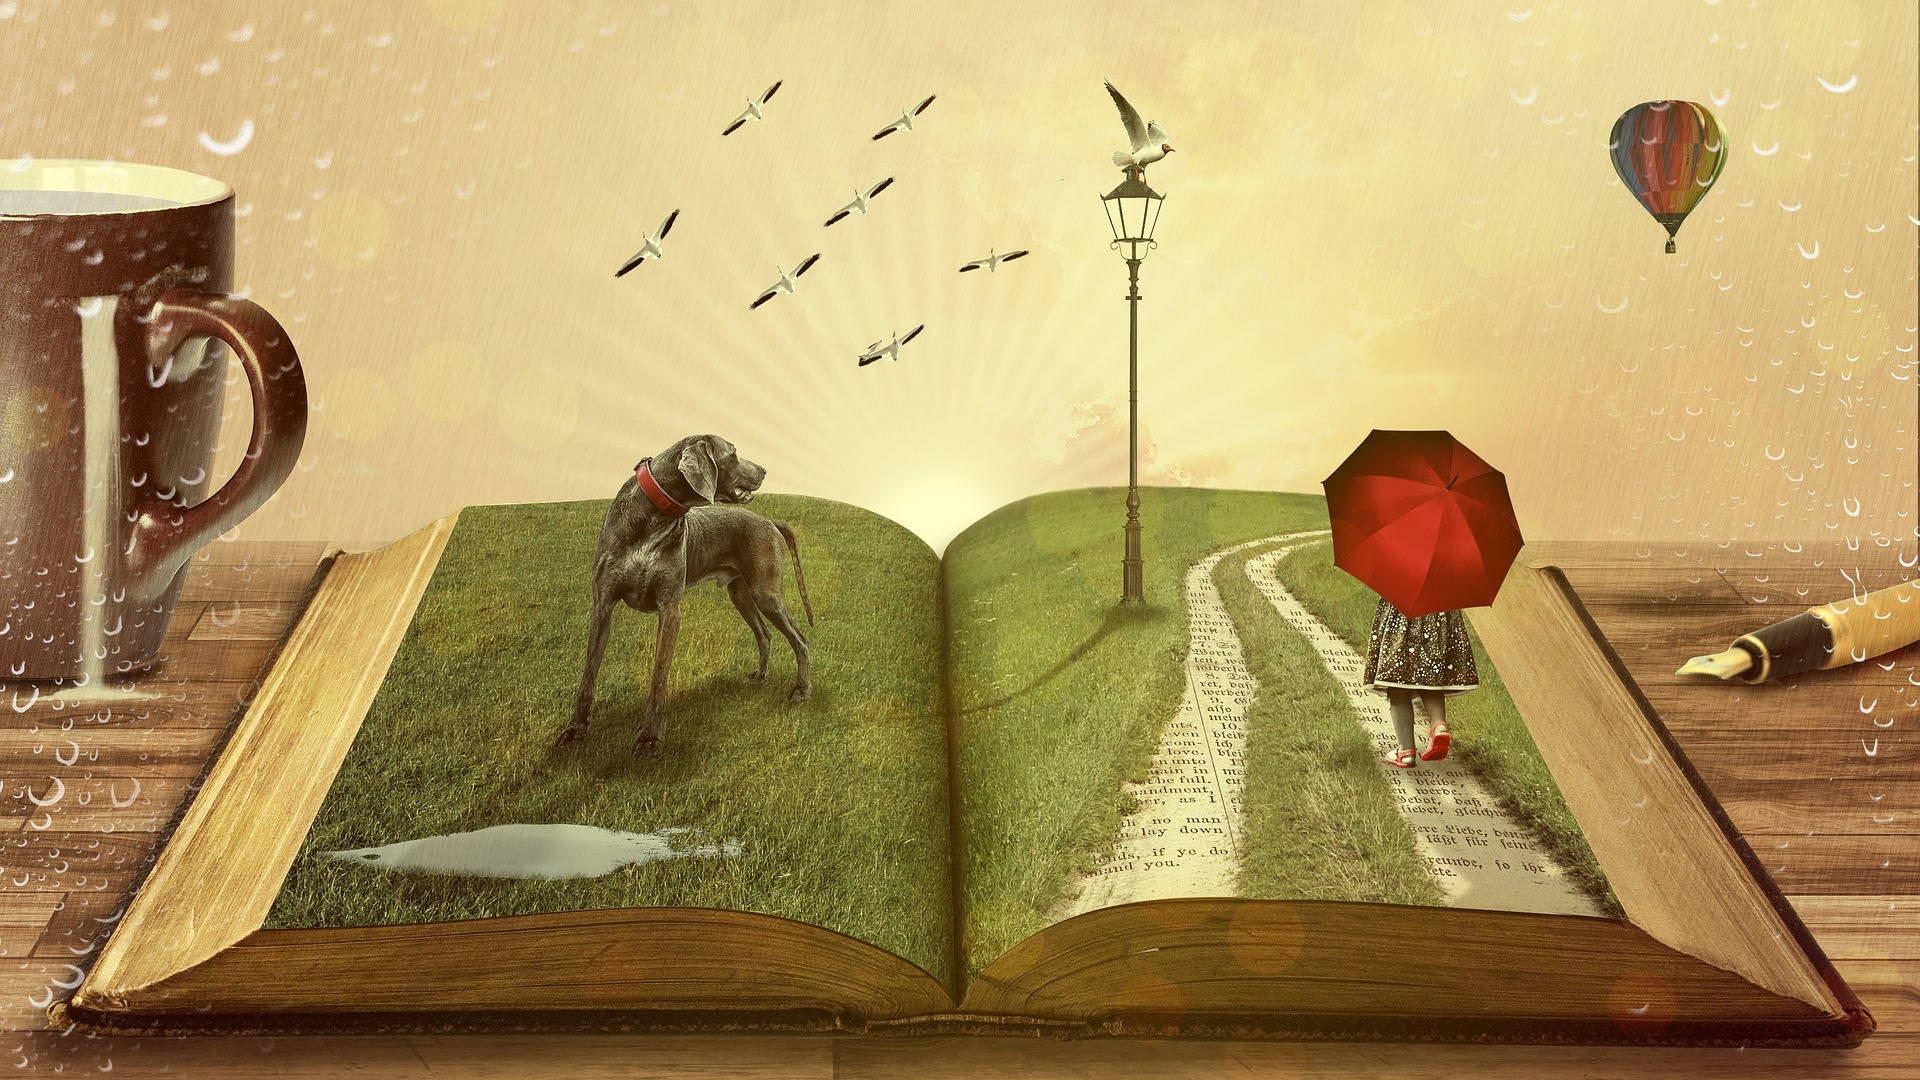 An imagined scene in the pages of a book